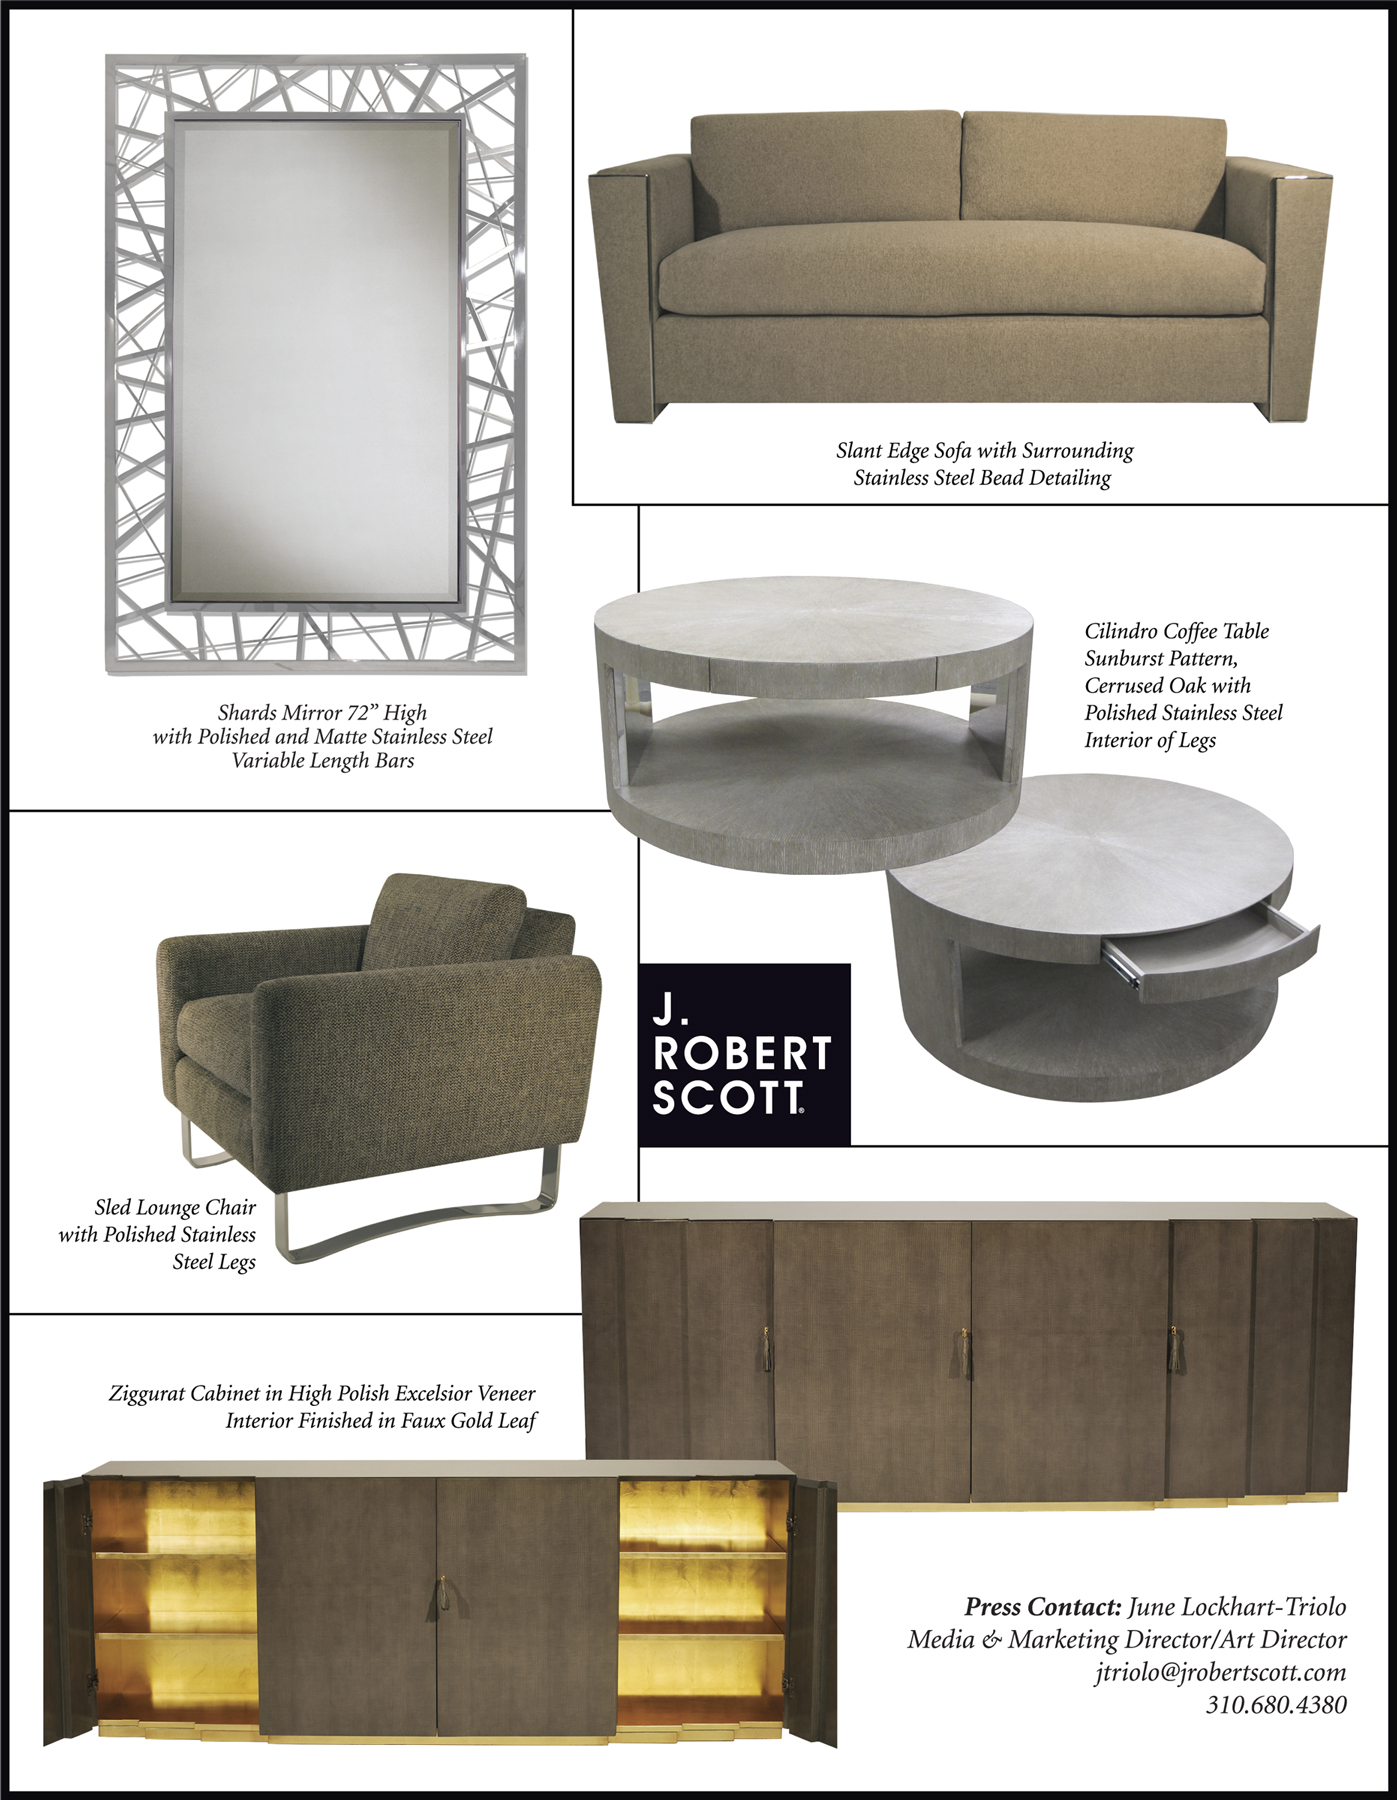 Charmant New Furniture From J. Robert Scott, Inc